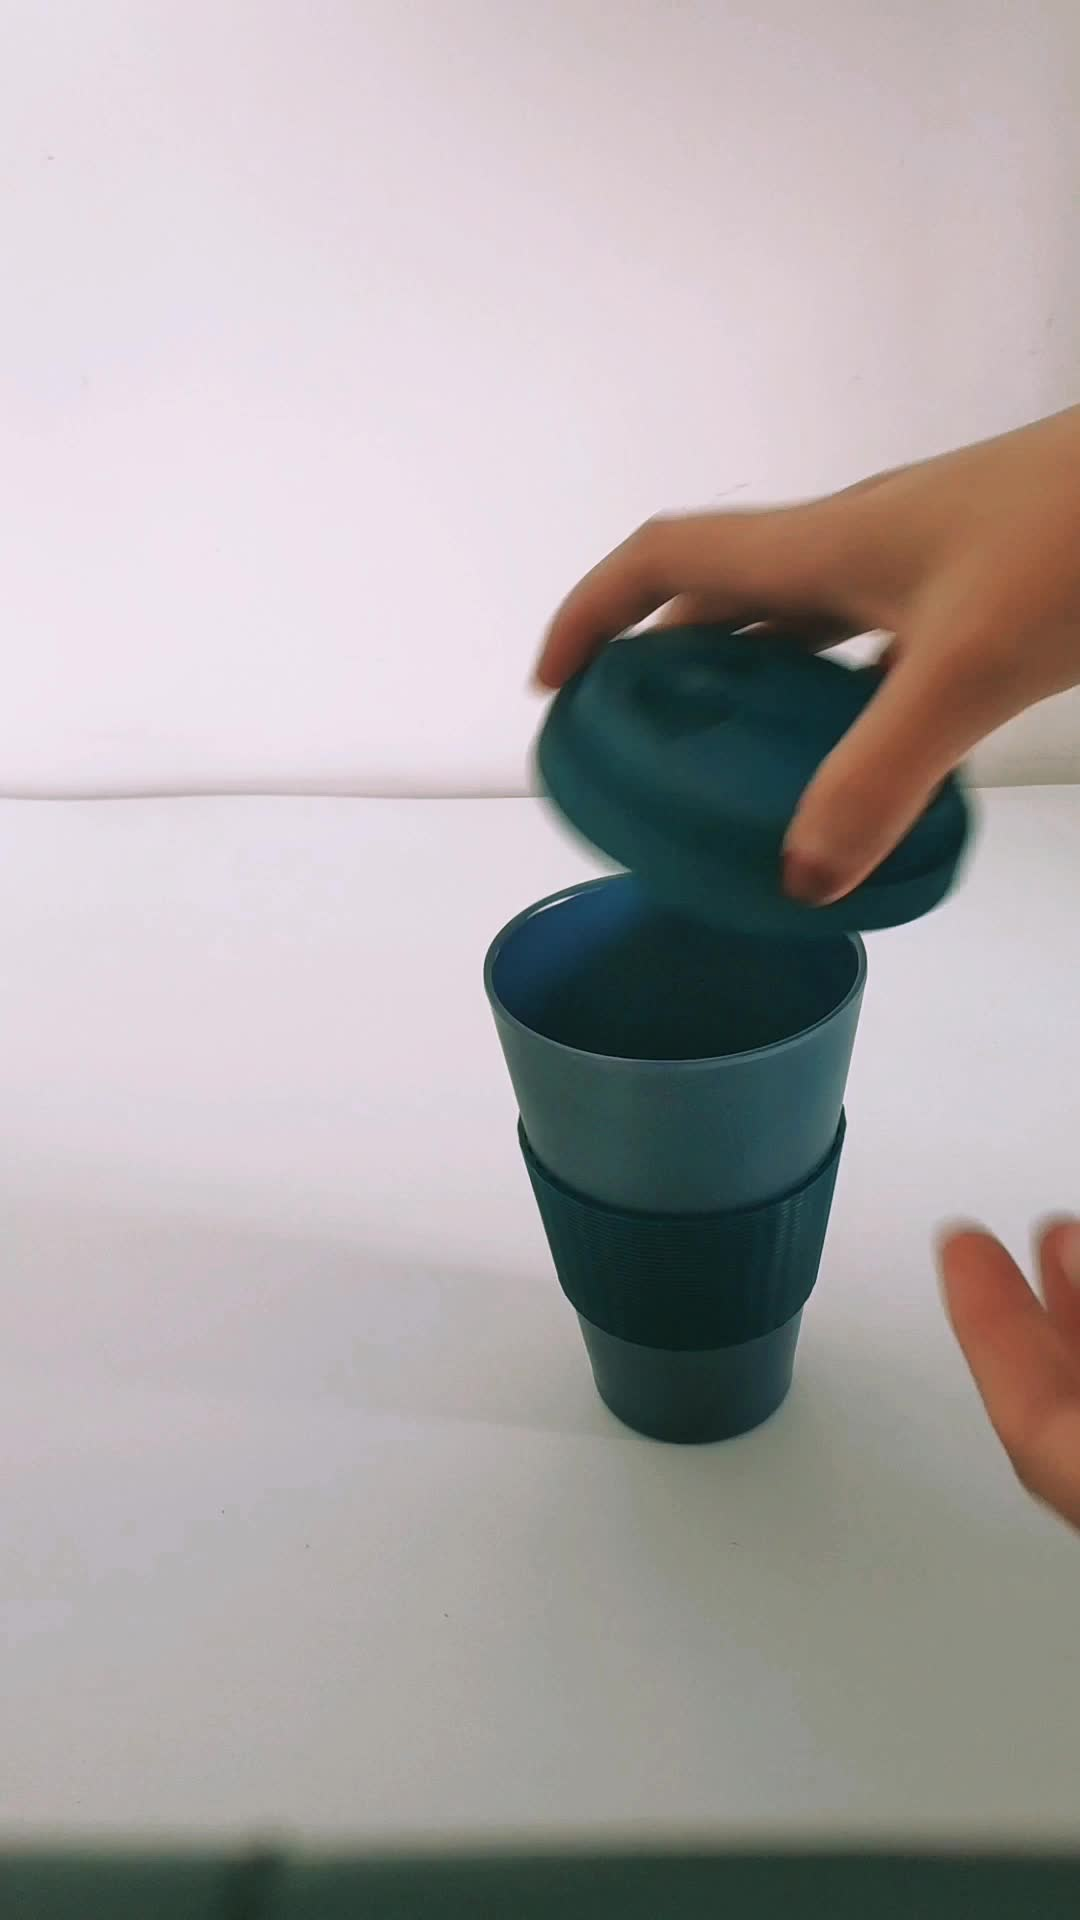 2017 Most popular High quality biodegradable 2 go bamboo cup bamboo fiber cup ECO cup